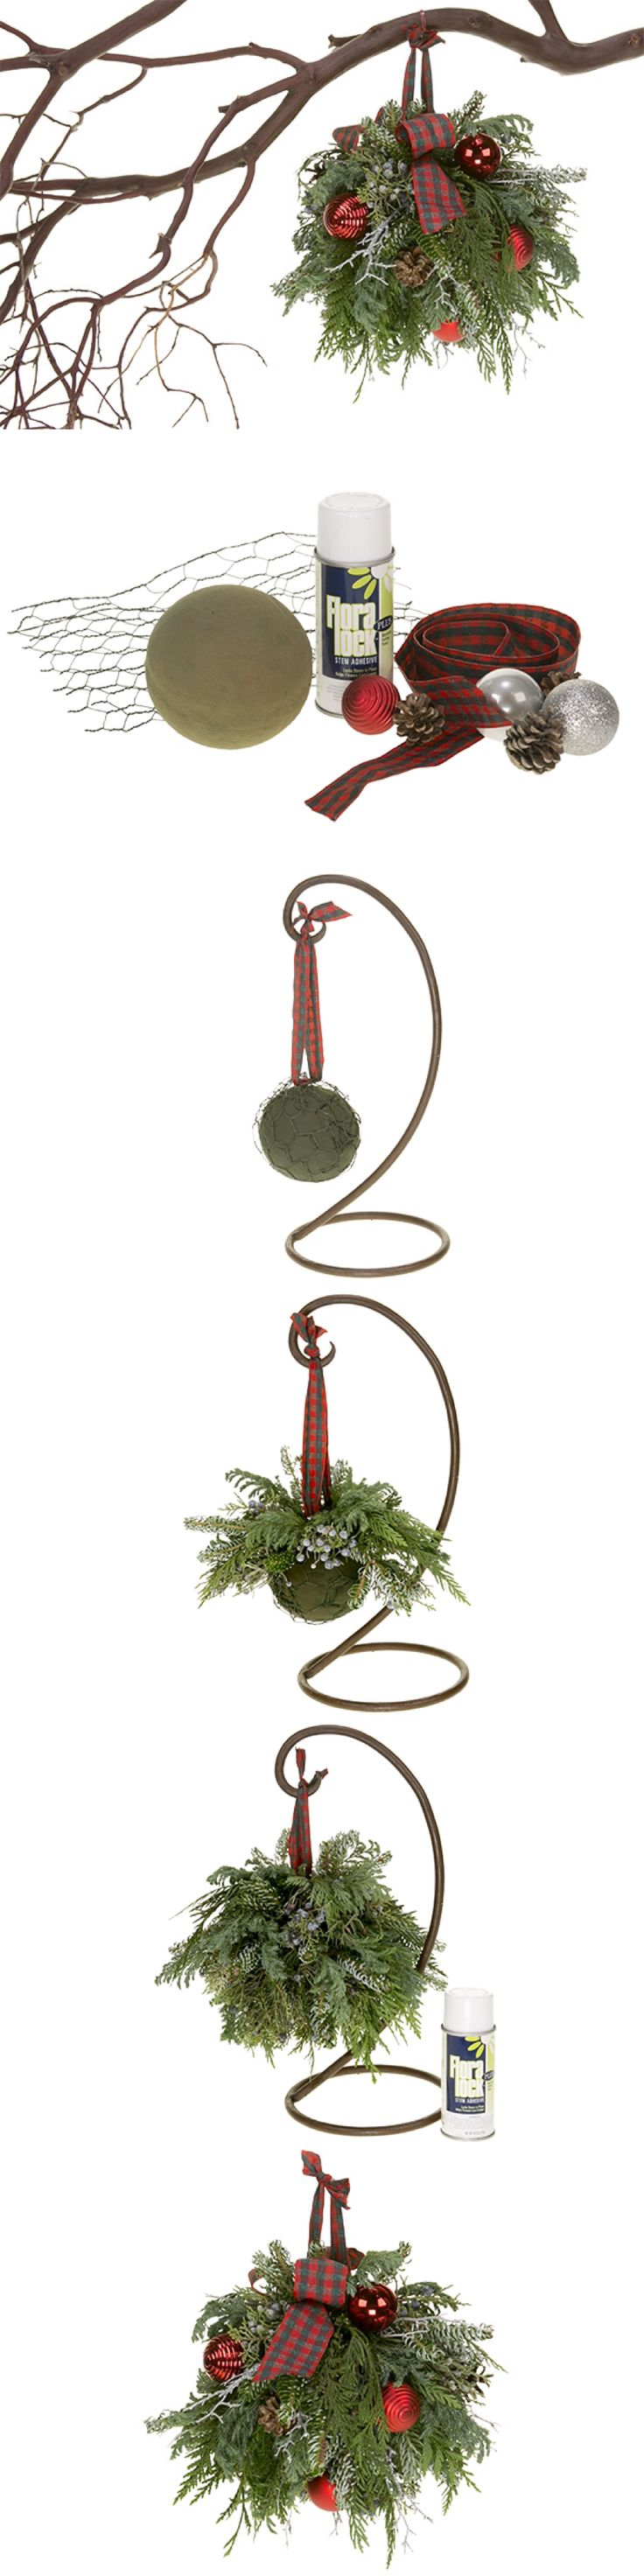 Christmas kissing ball DIY how-to. Fragrant evergreens to add to the holiday decor.